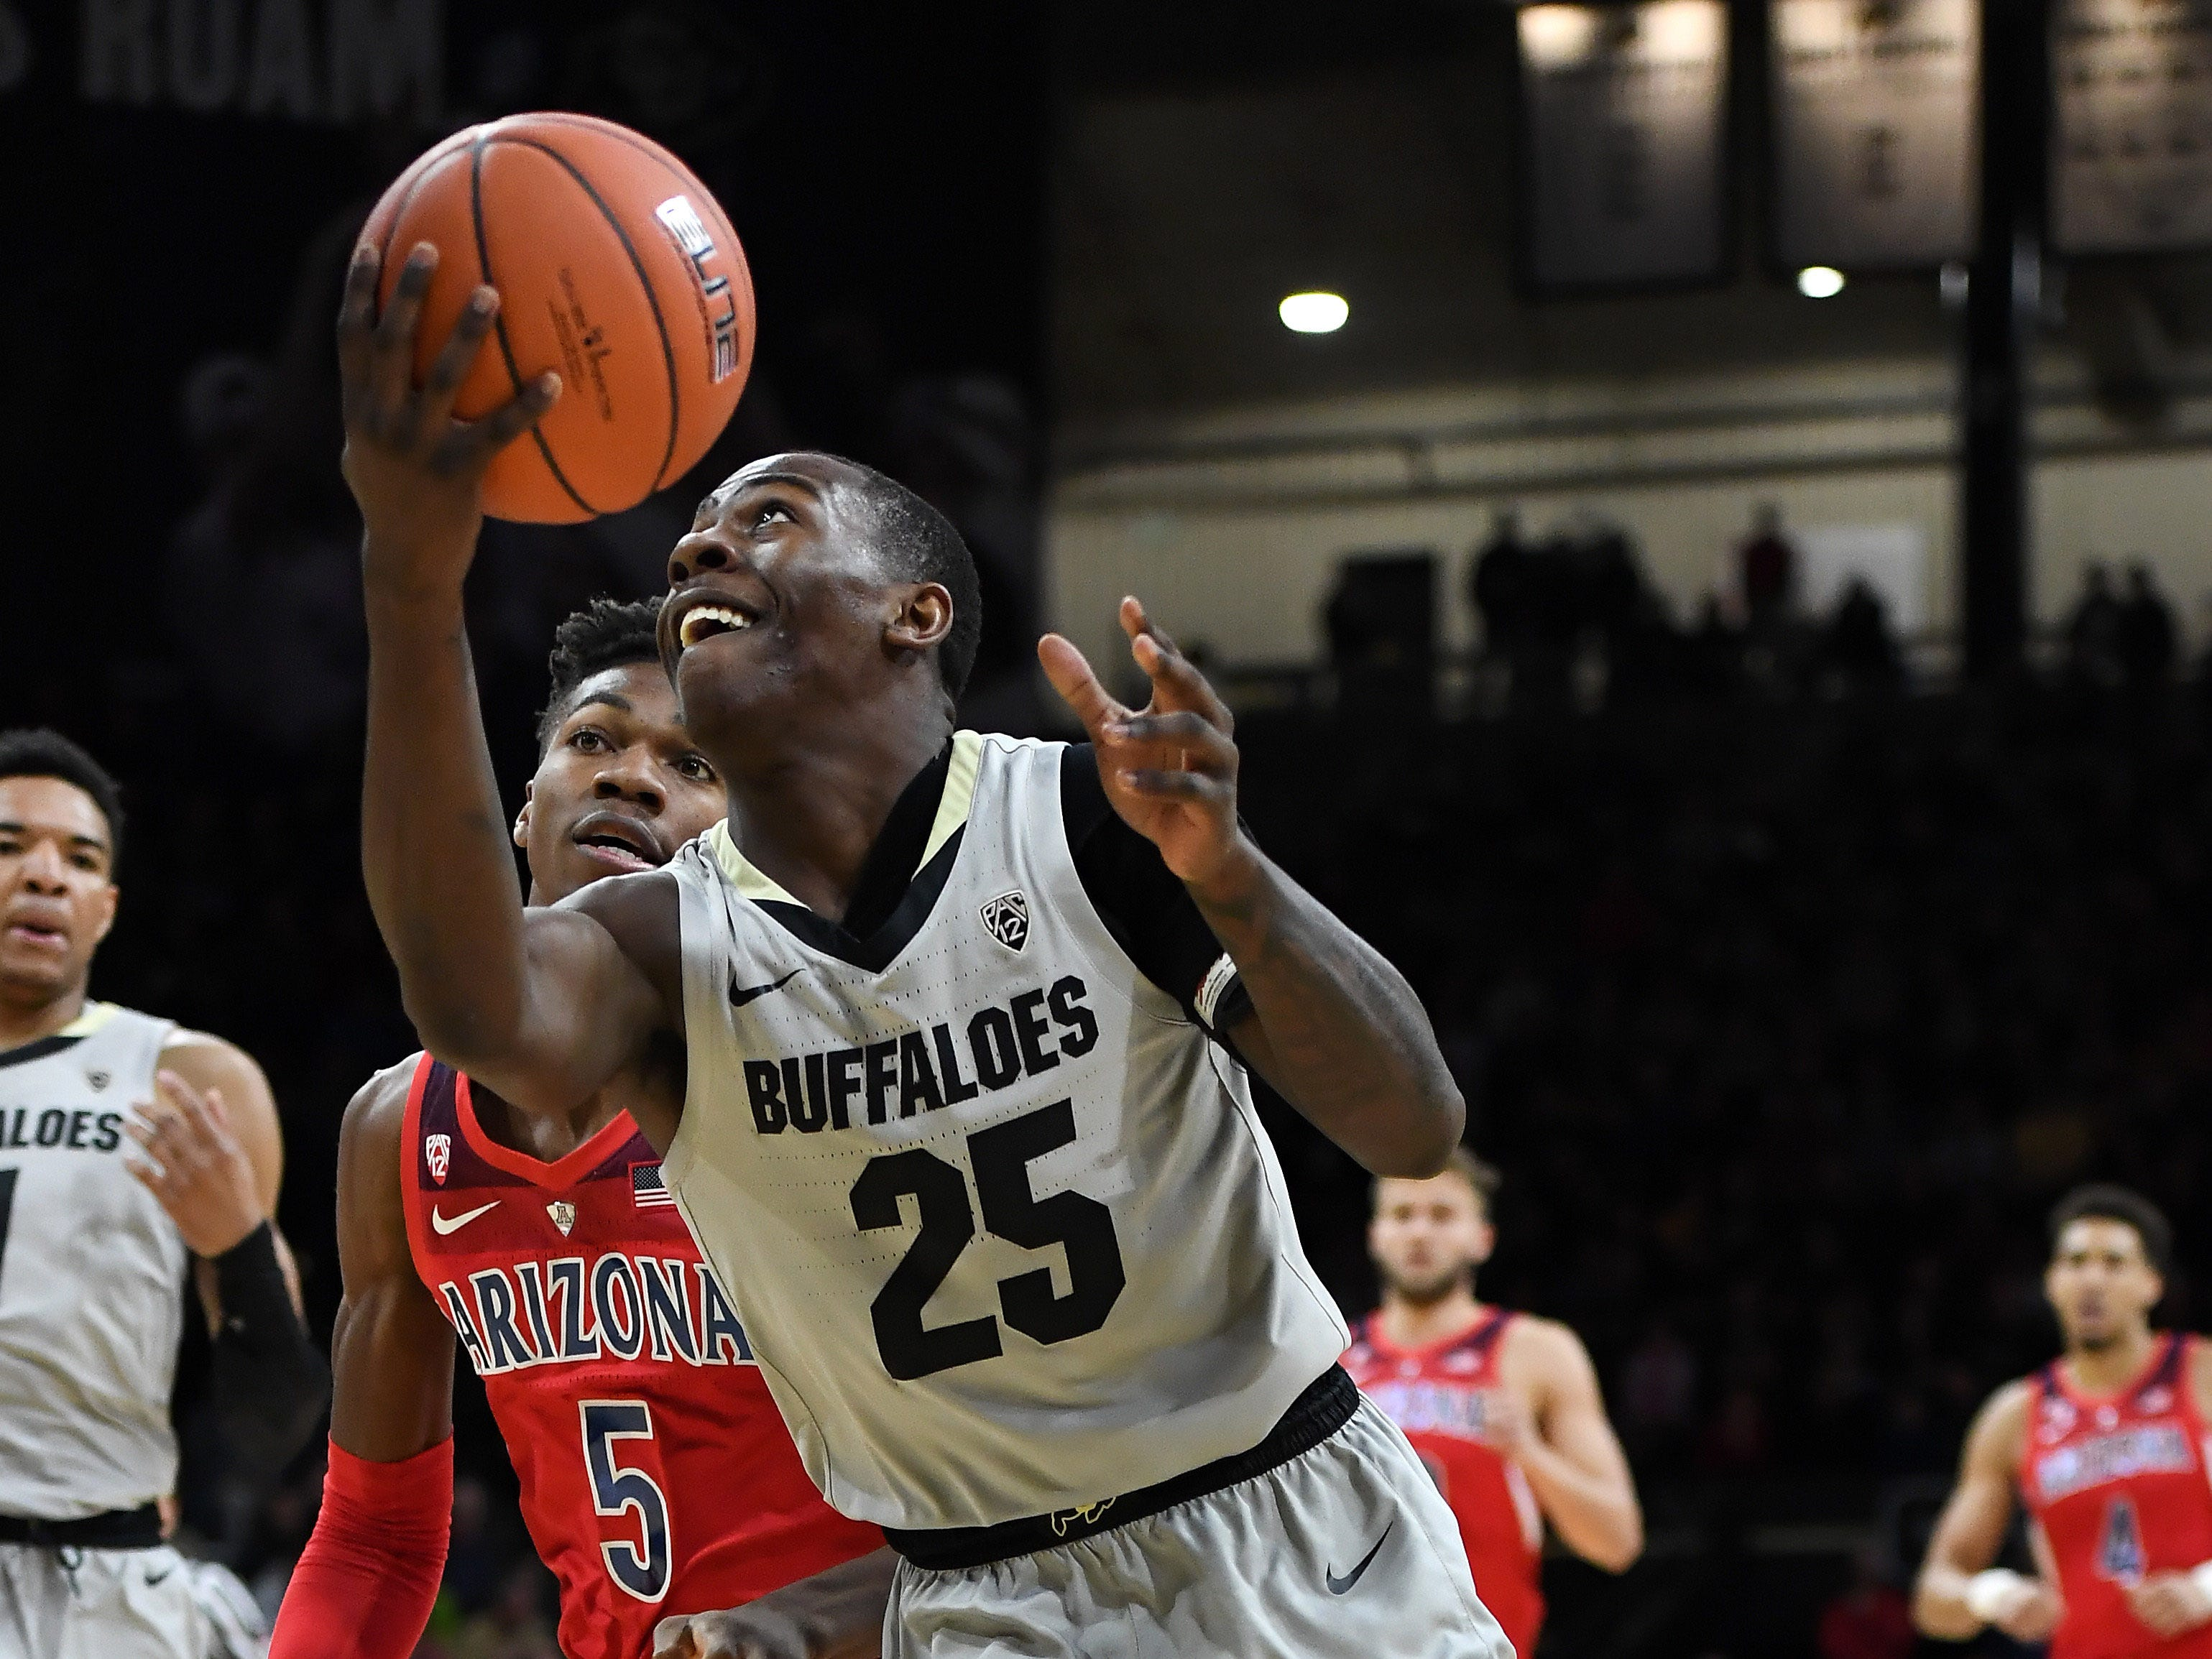 Feb 17, 2019; Boulder, CO, USA; Colorado Buffaloes guard McKinley Wright IV (25) shoots past Arizona Wildcats guard Brandon Randolph (5) in the first half at the Coors Events Center. Mandatory Credit: Ron Chenoy-USA TODAY Sports